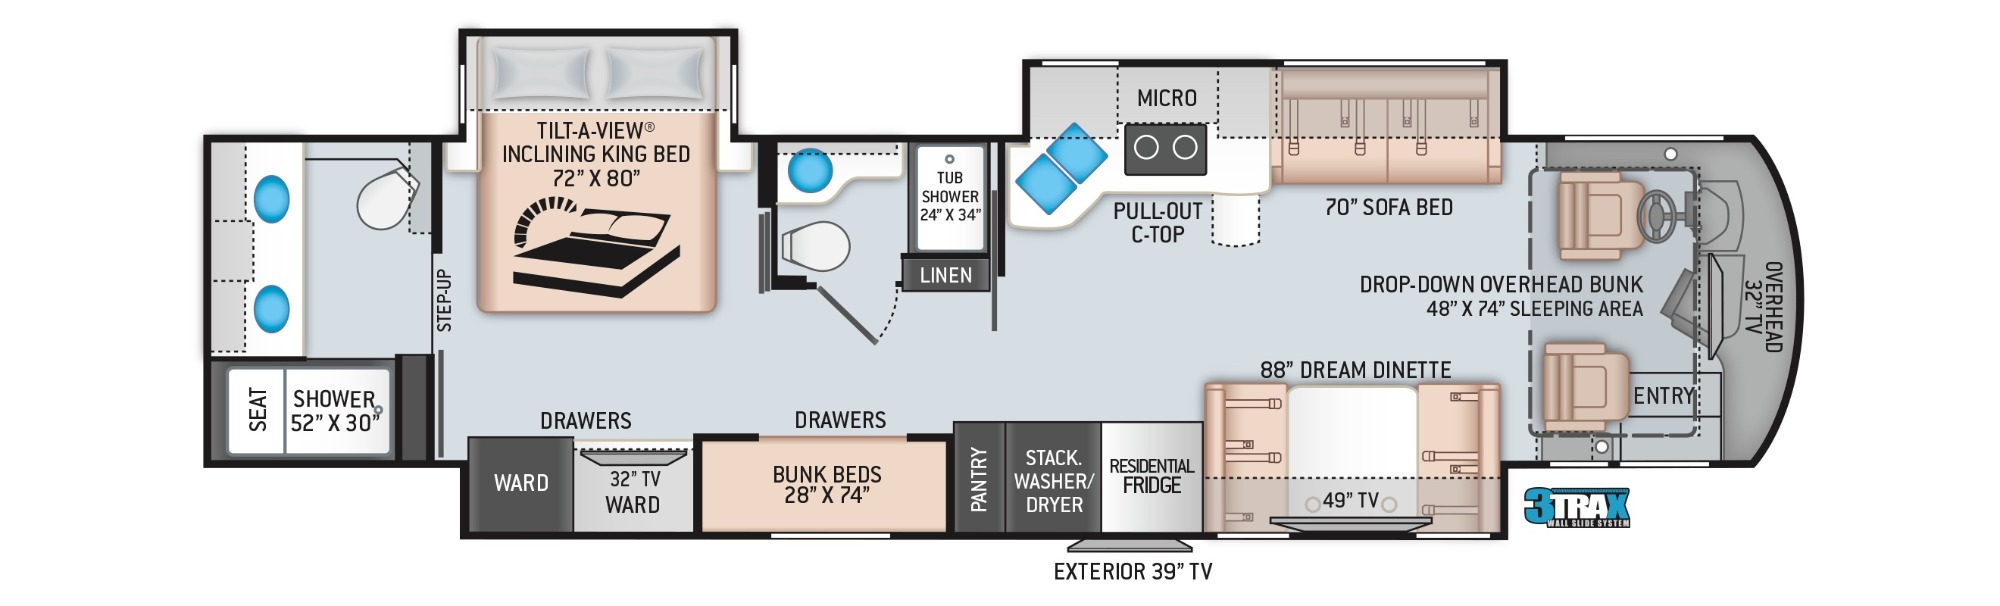 View Floor Plan for 2022 THOR ARIA 4000